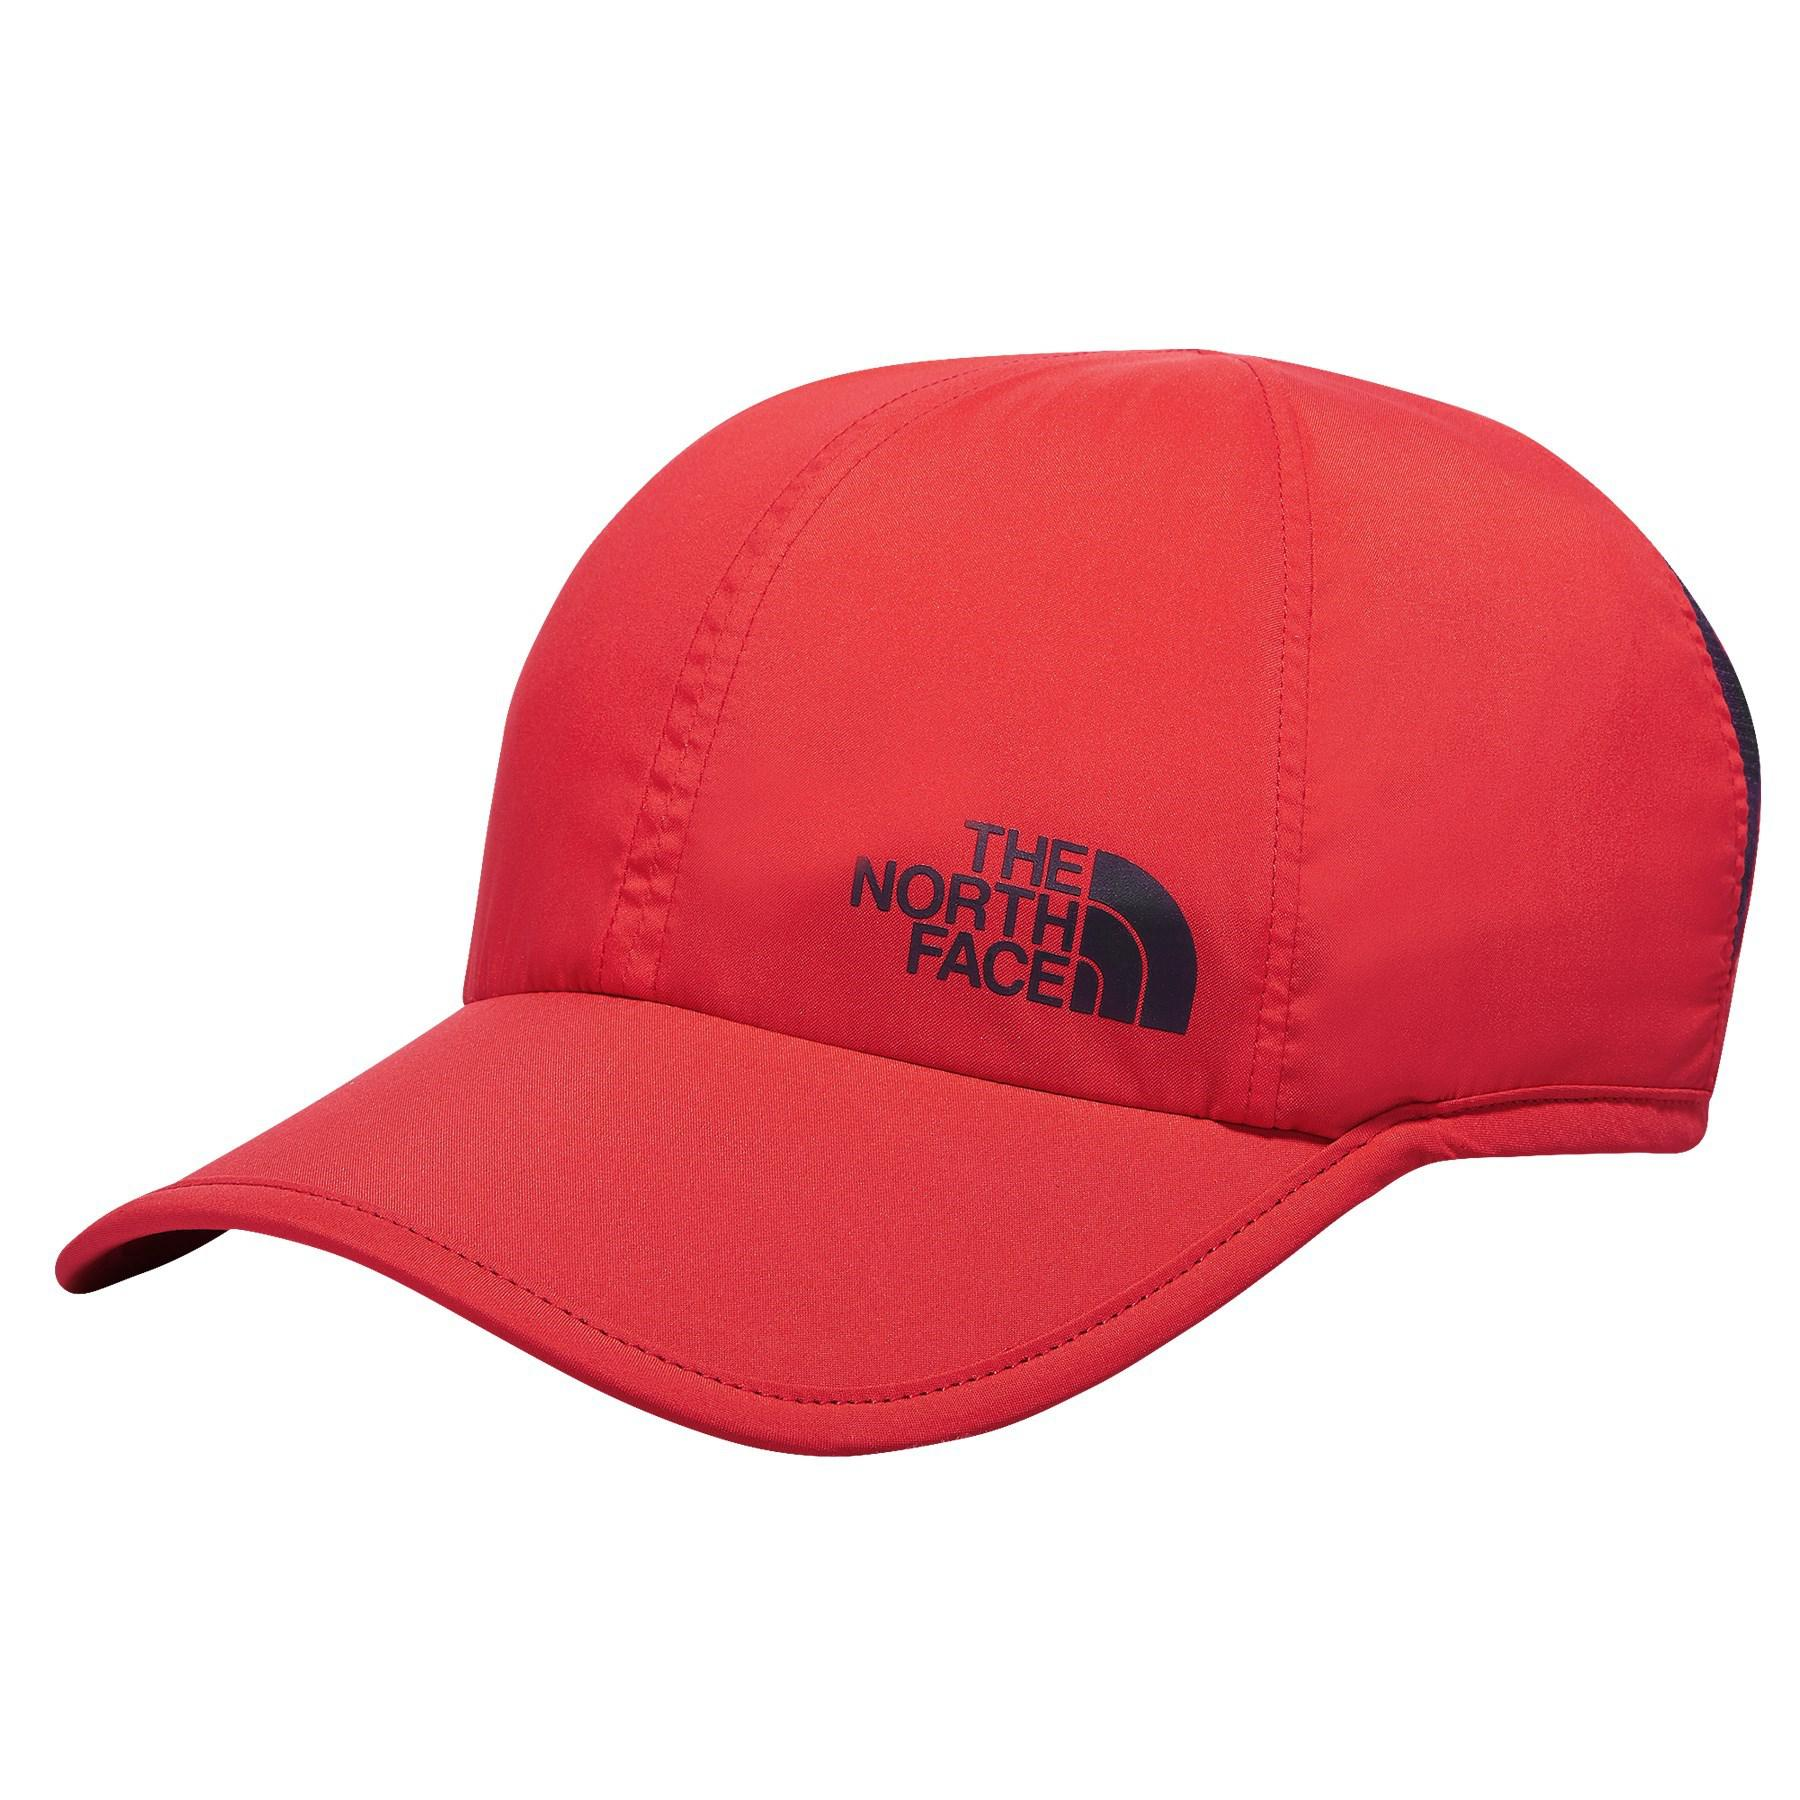 3b30fe2d068 Lyst - The North Face Breakaway Baseball Cap (for Men) in Red for Men